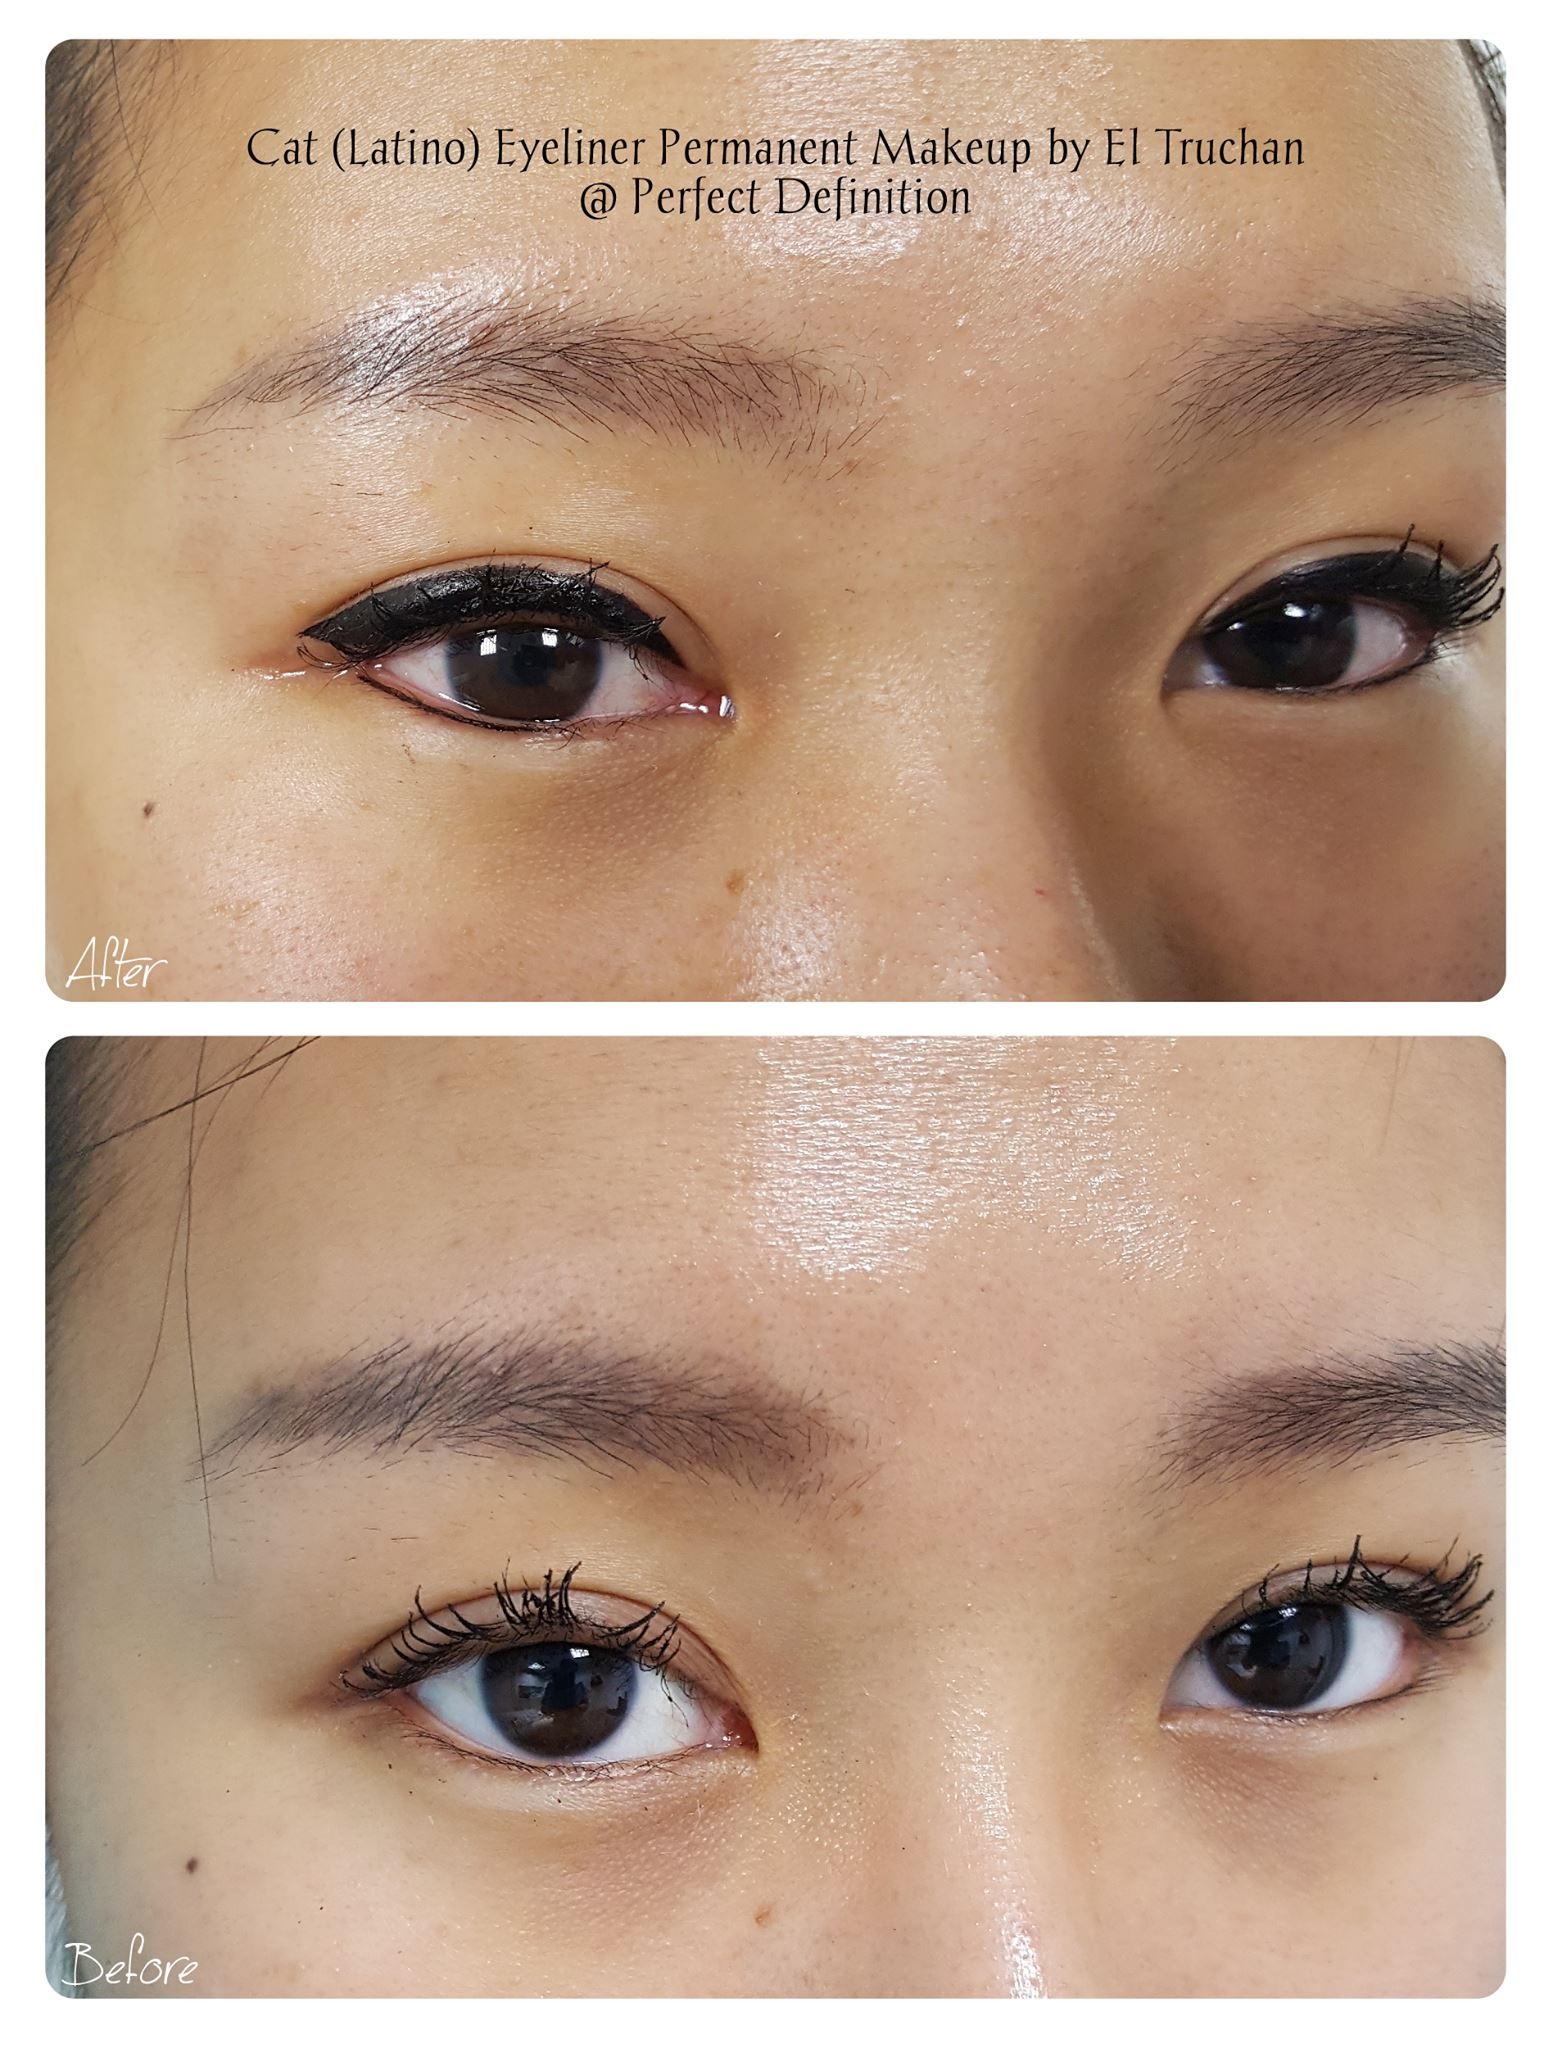 Latino Eyeliner Permanent Makeup